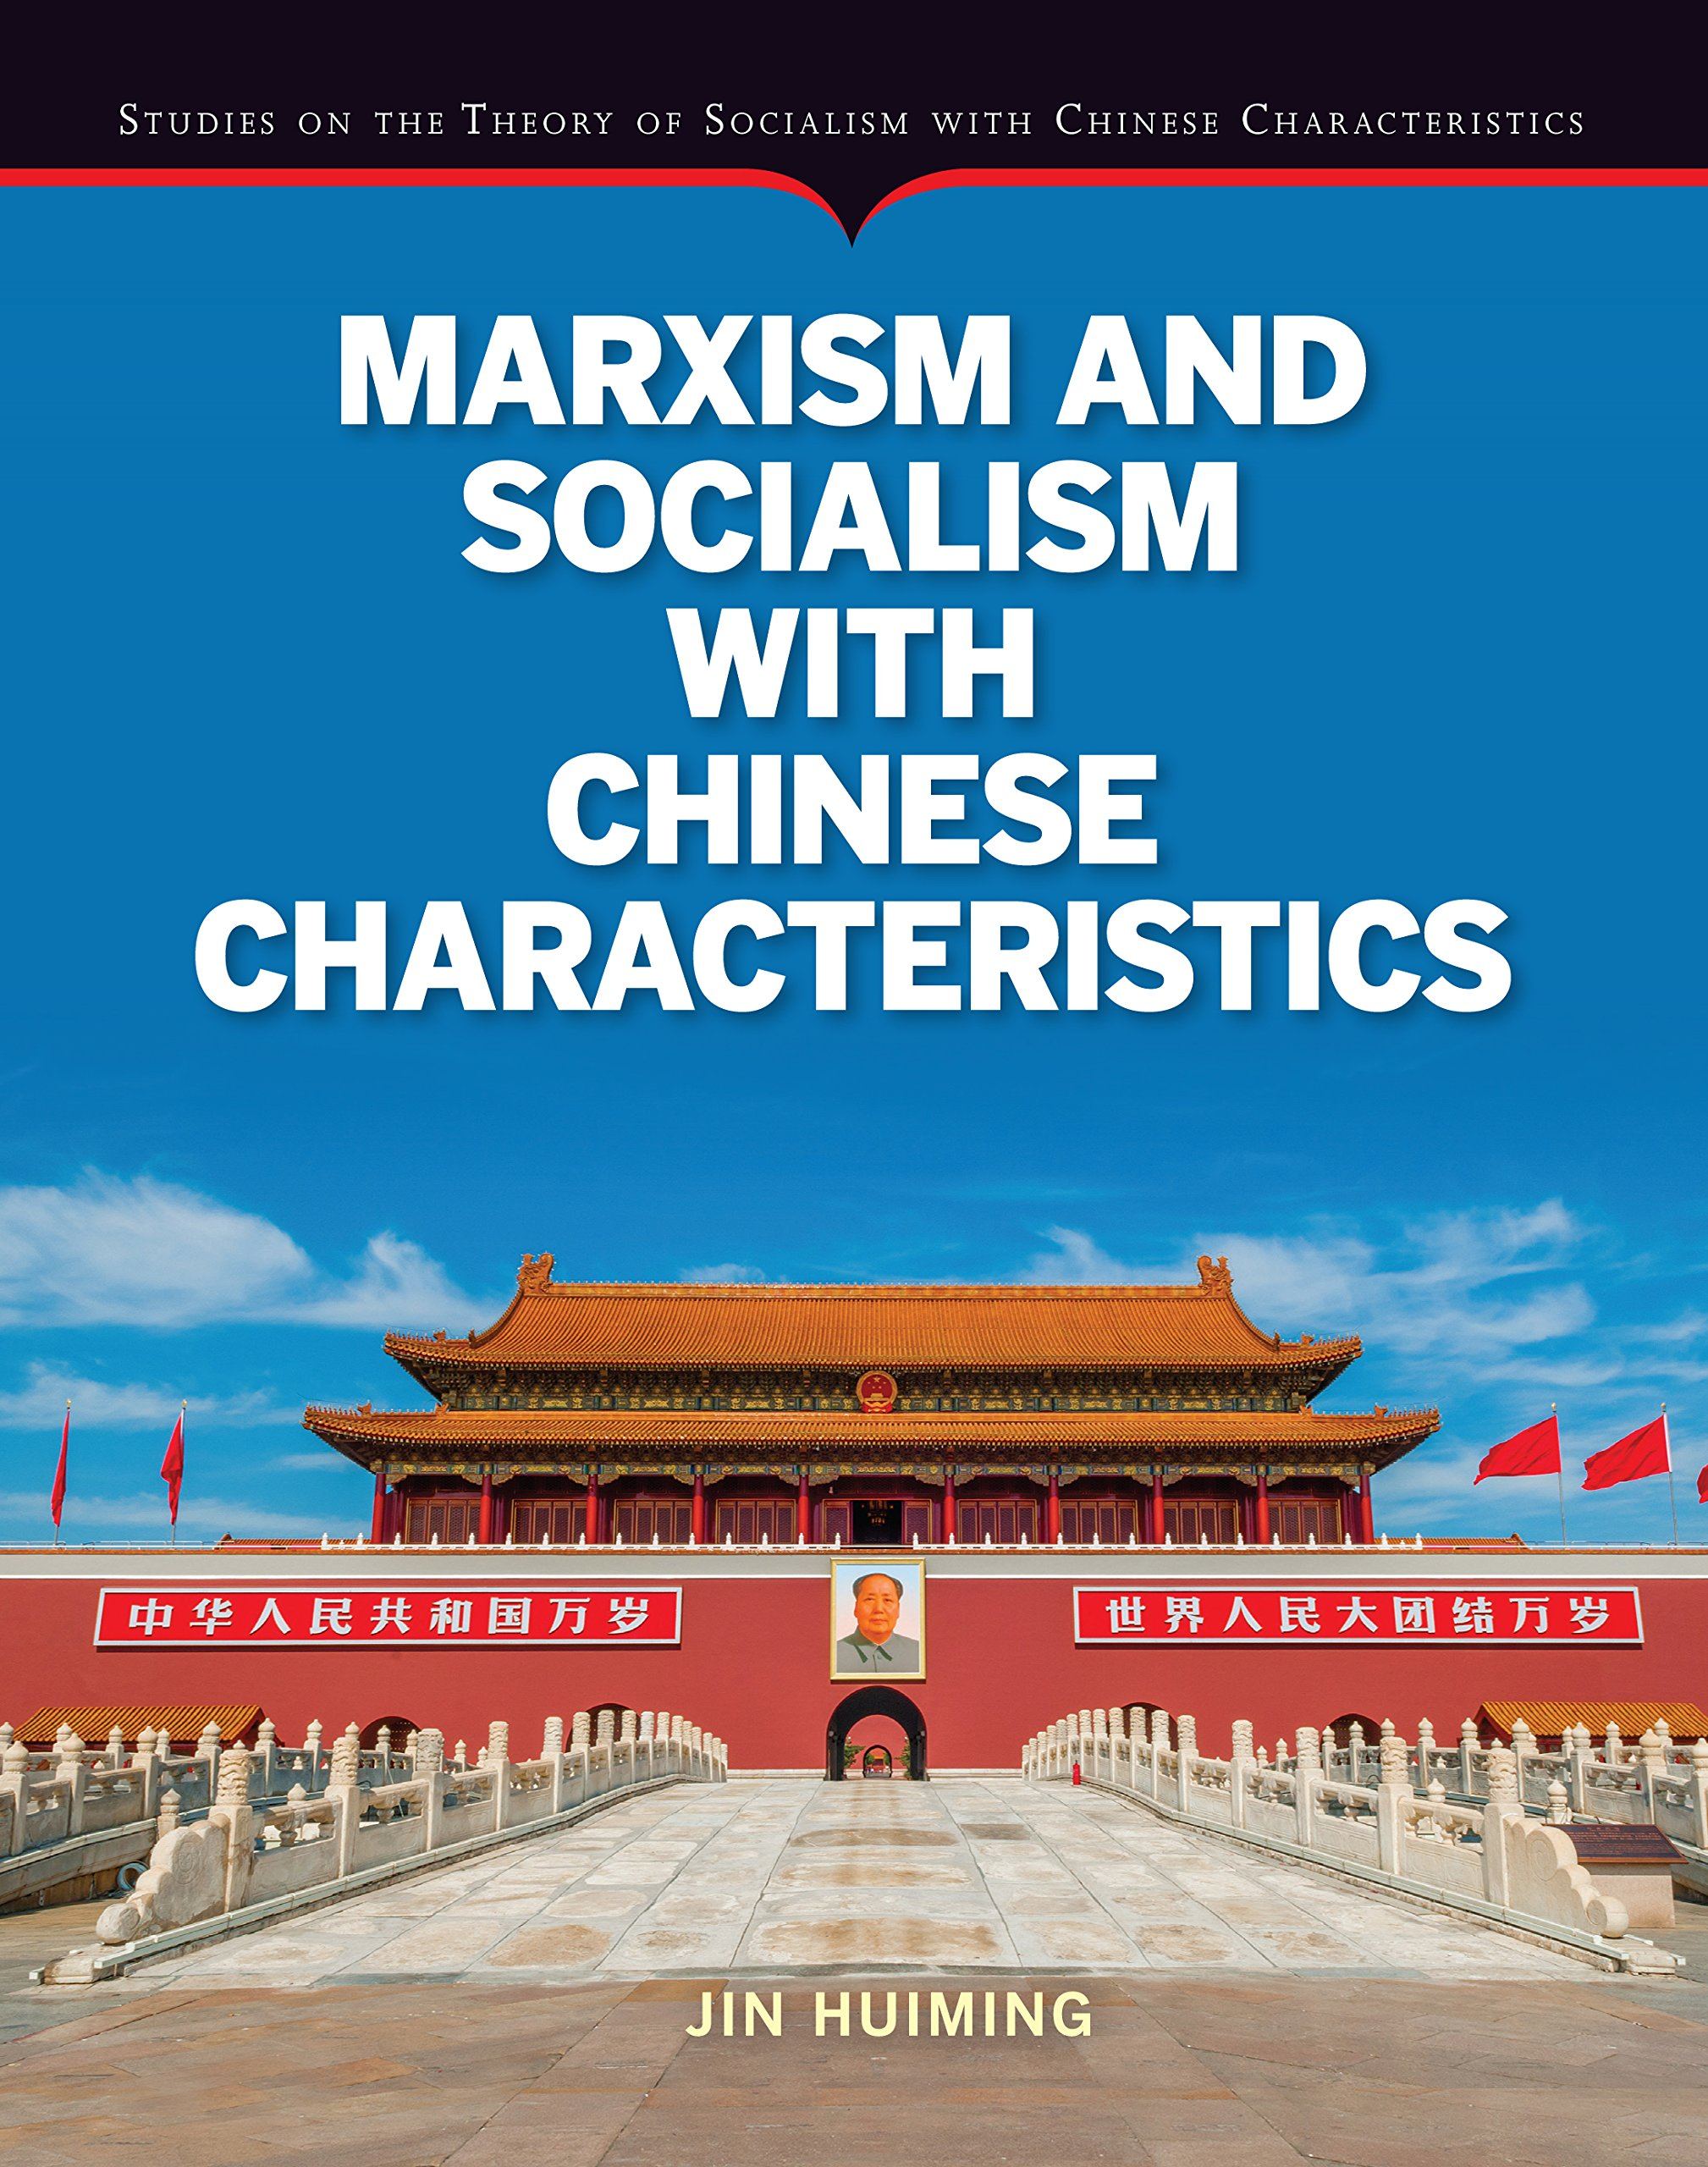 Marxism and Socialism with Chinese Characteristics: Amazon.co.uk: Jin  Huiming: 9789814698214: Books